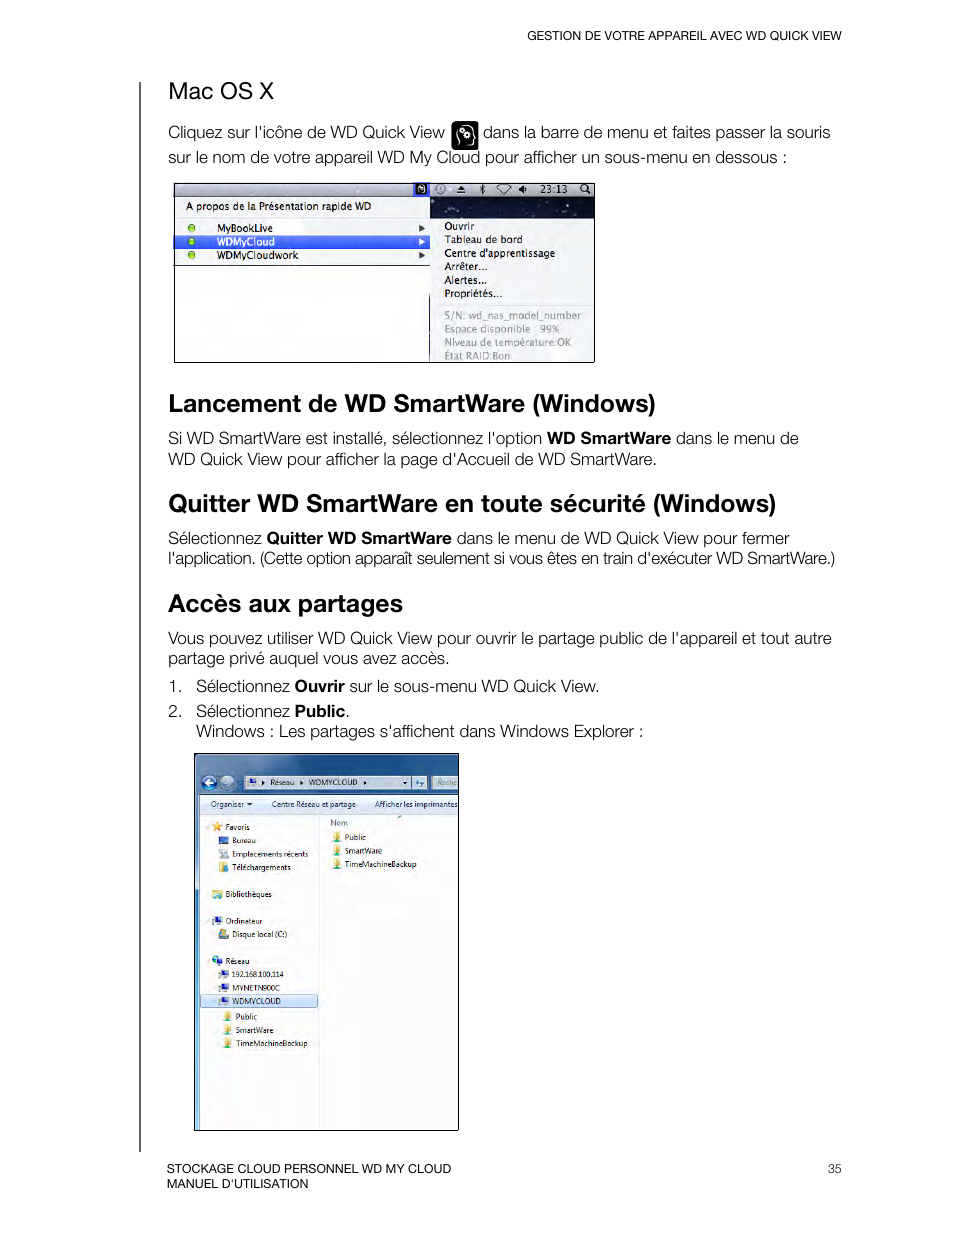 Mac os x, Lancement de wd smartware (windows), Quitter wd smartware